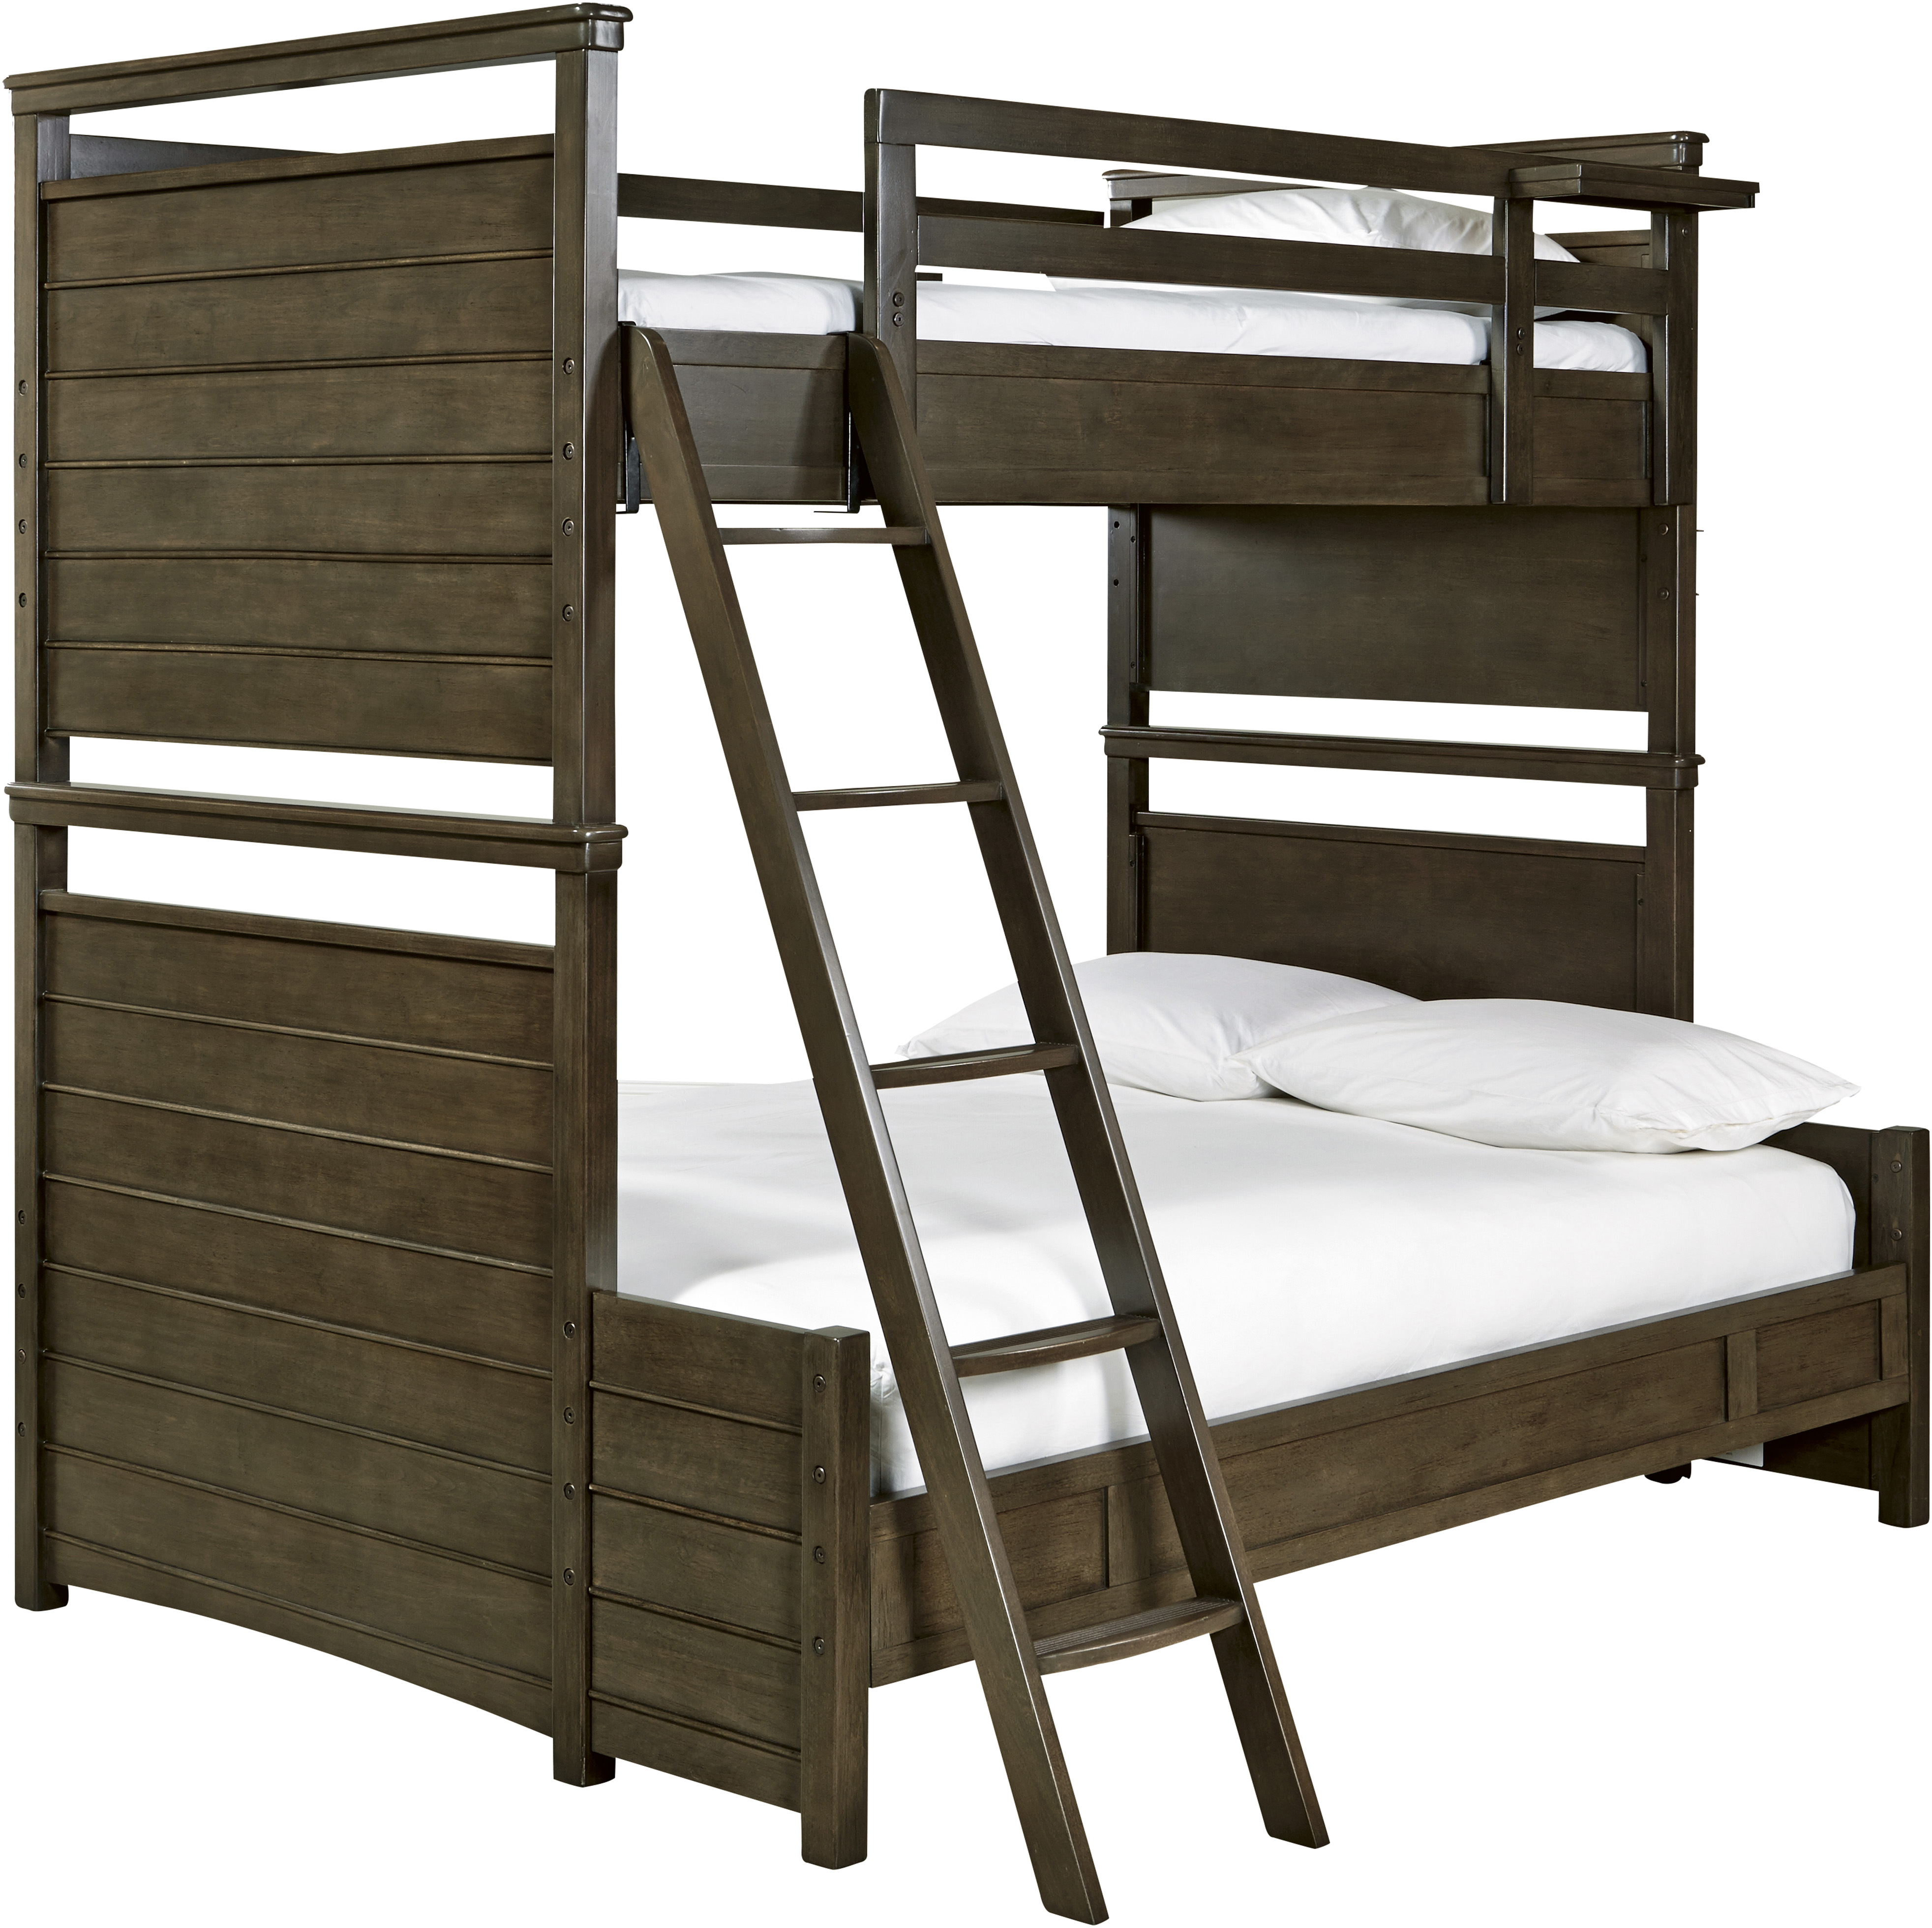 American Furniture Warehouse Twin Over Full Bunk Bed